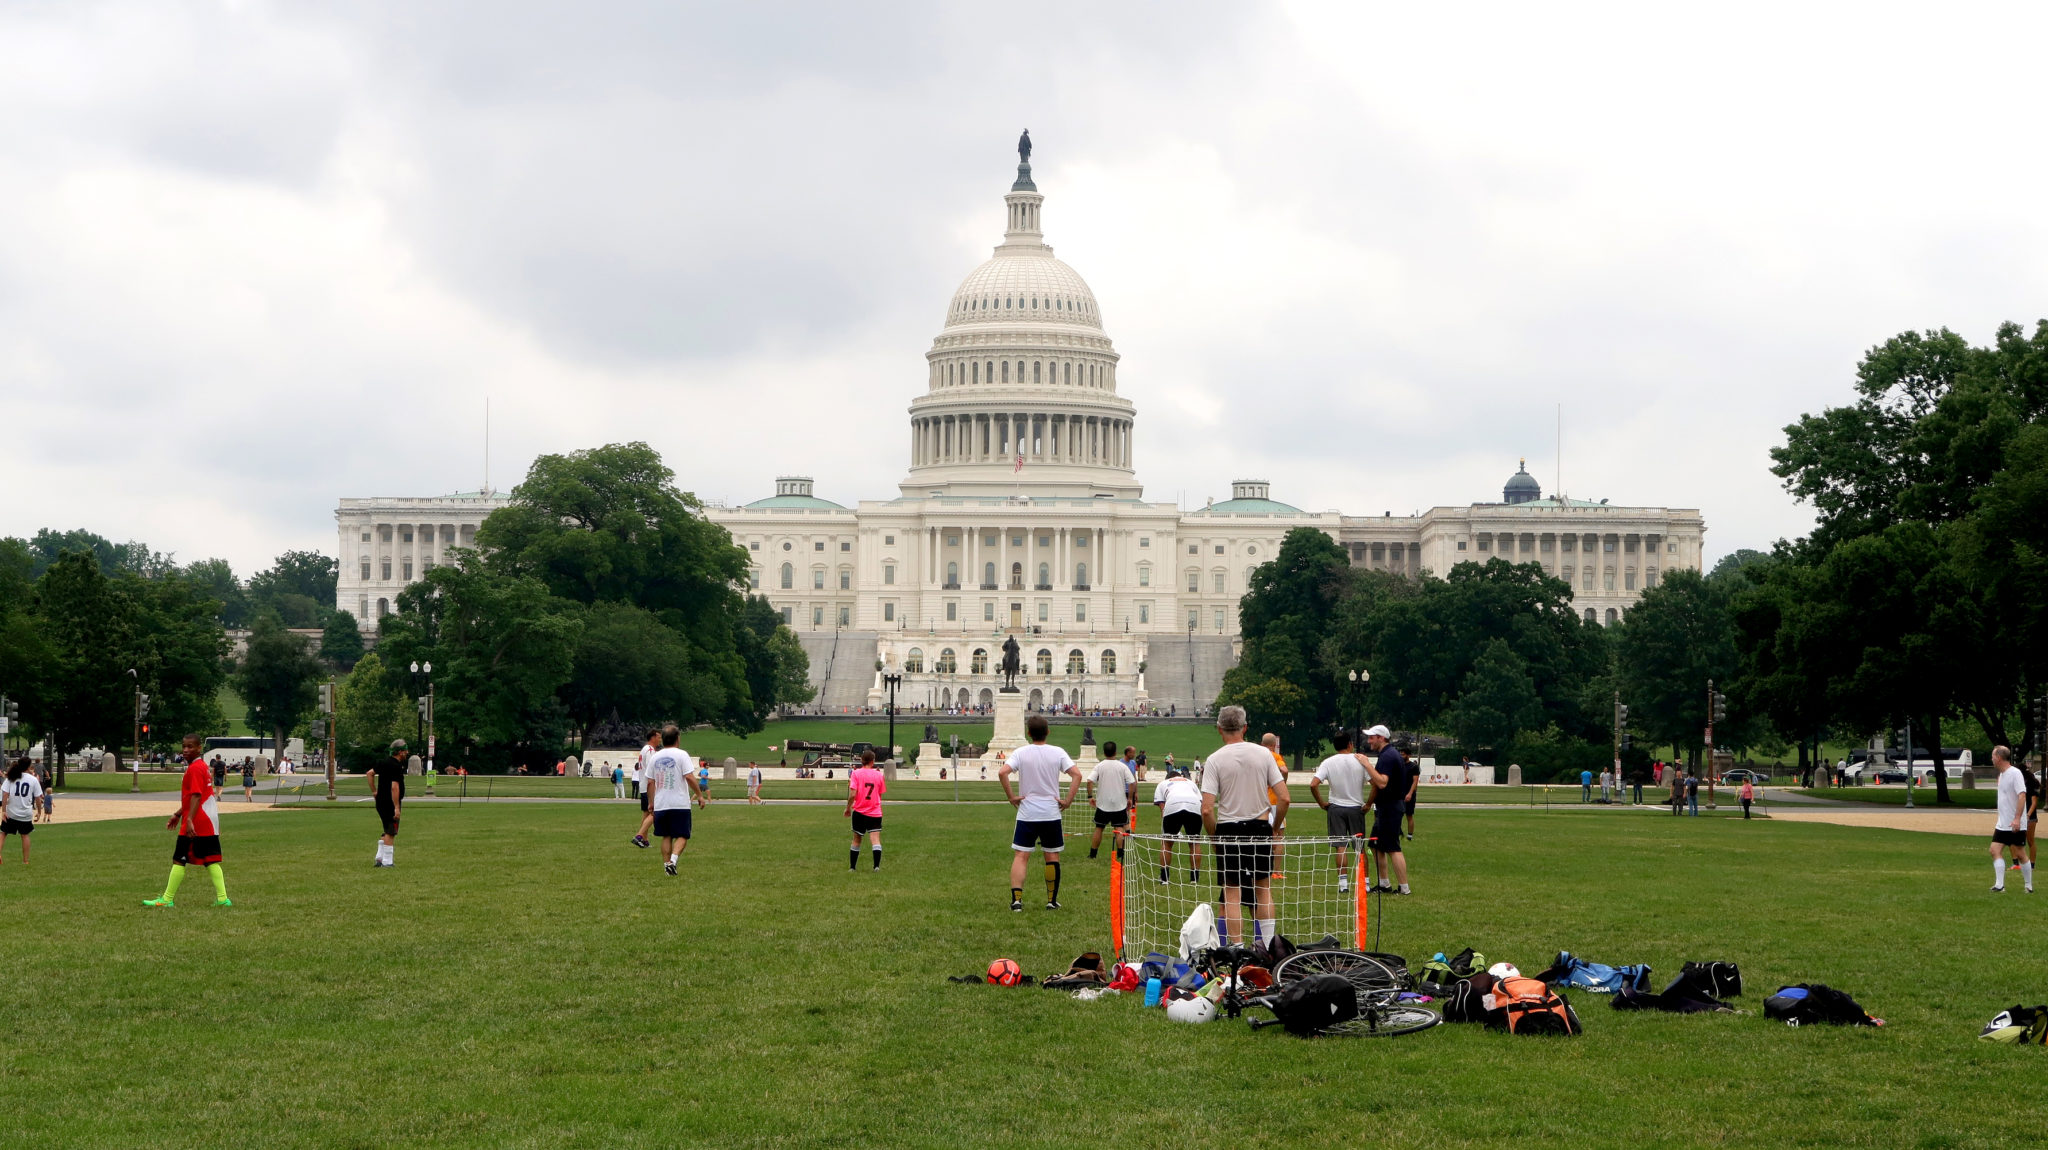 Des personnes jouent au football dans le National Mall devant le Capitole, Washington DC.